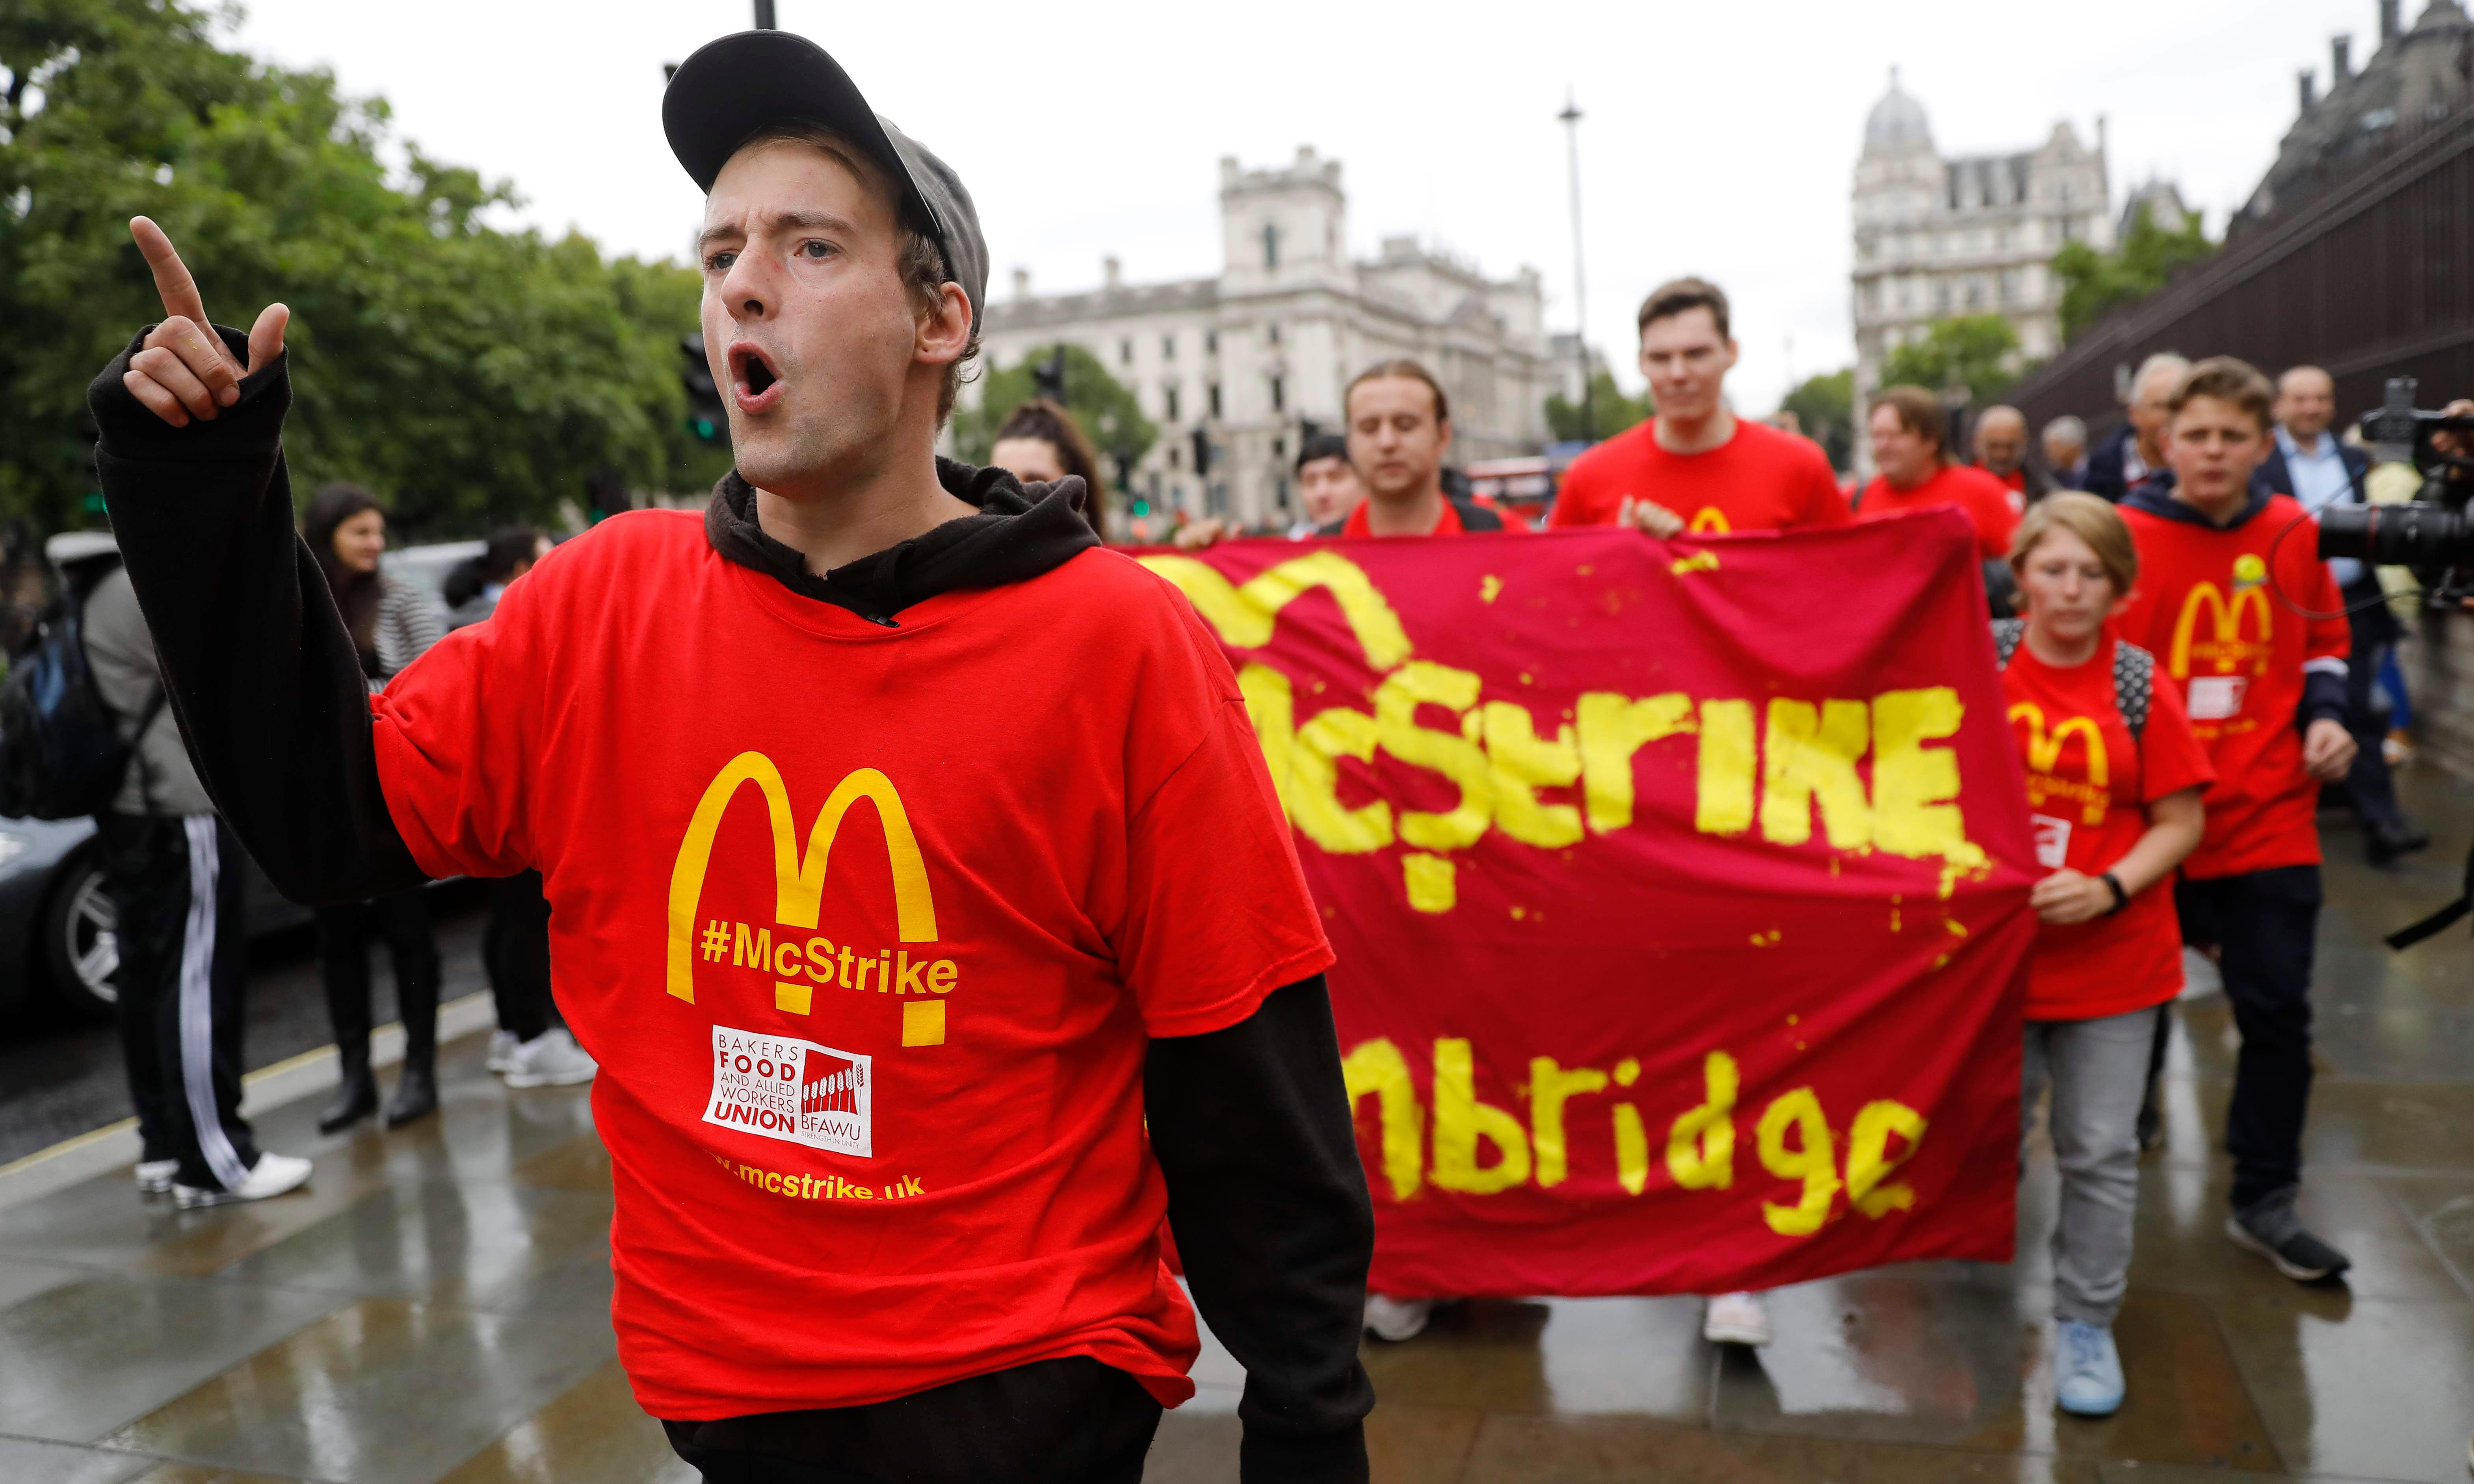 Young people are rewiring capitalism with their McStrike